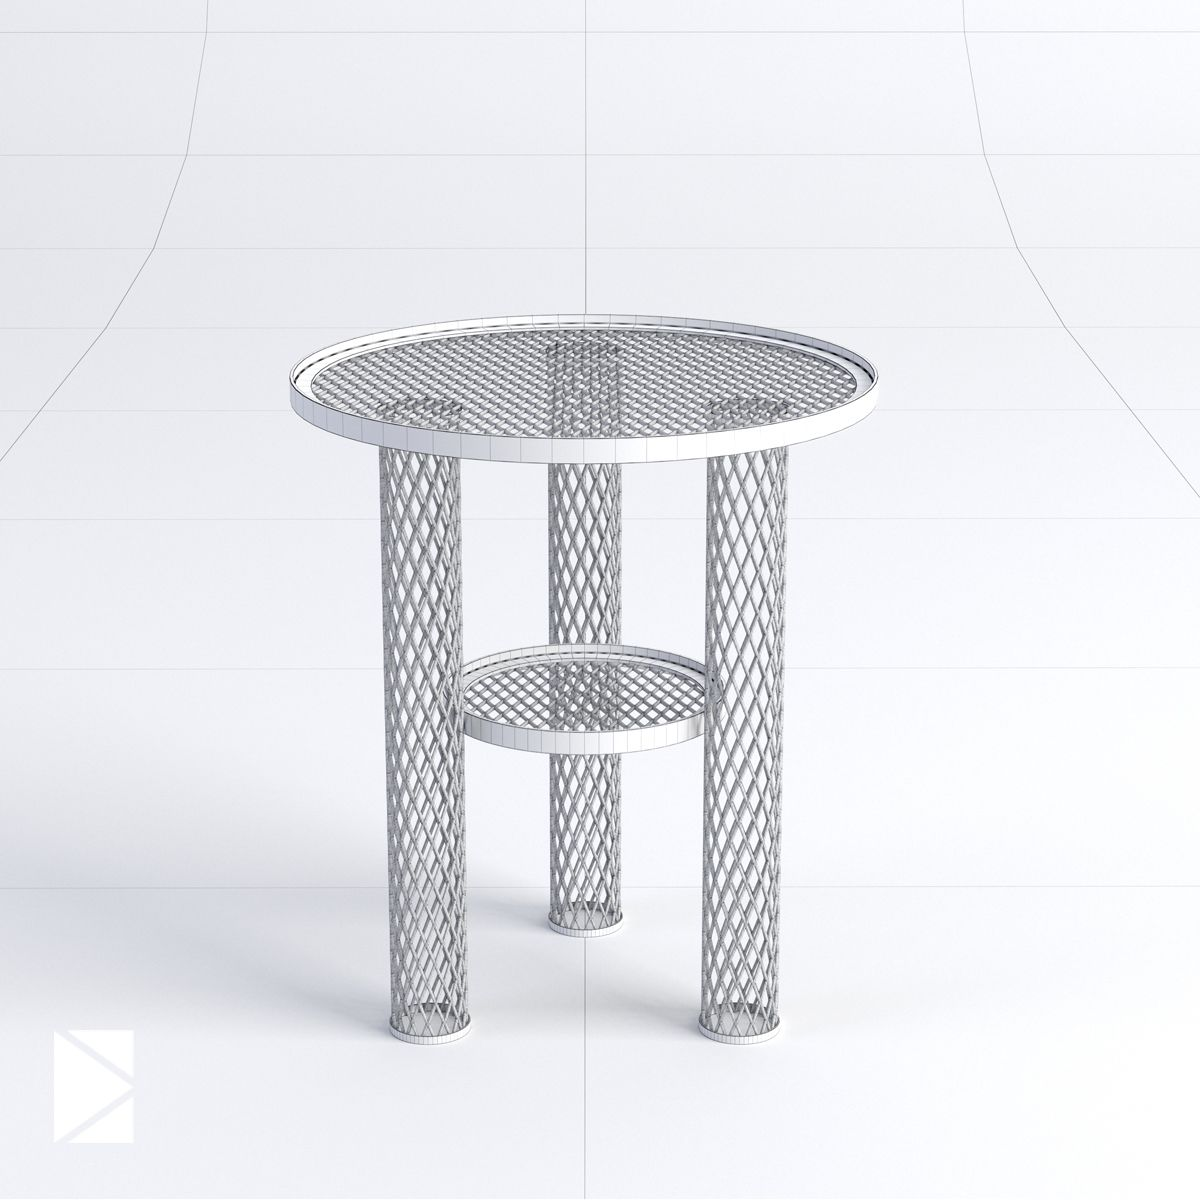 Moroso Net Coffee Tables Coffee Table Table Side Table